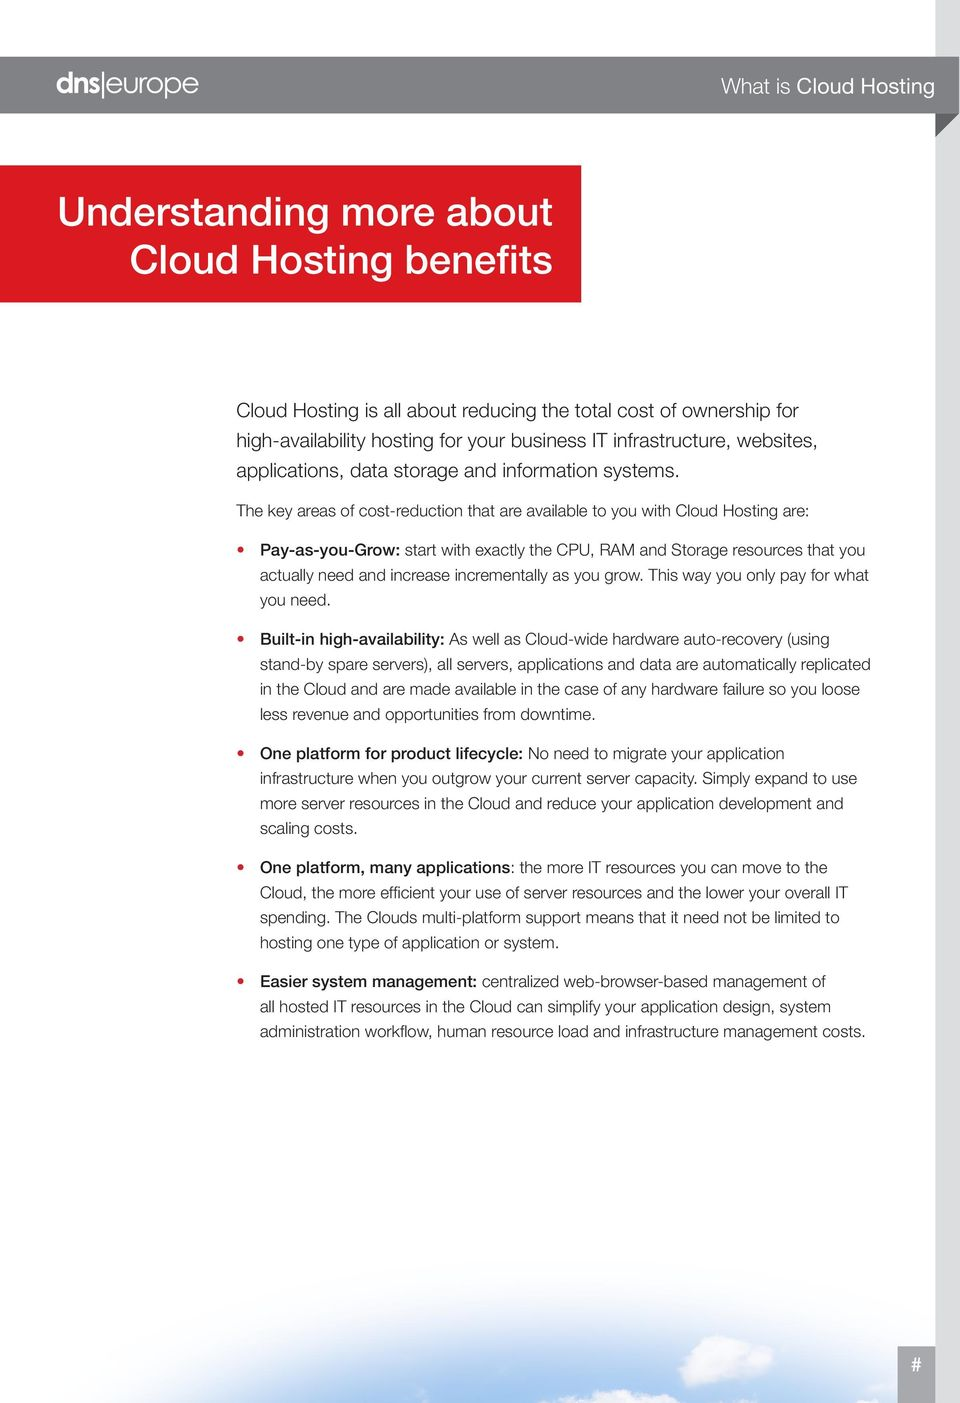 The key areas of cost-reduction that are available to you with Cloud Hosting are: Pay-as-you-Grow: start with exactly the CPU, RAM and Storage resources that you actually need and increase